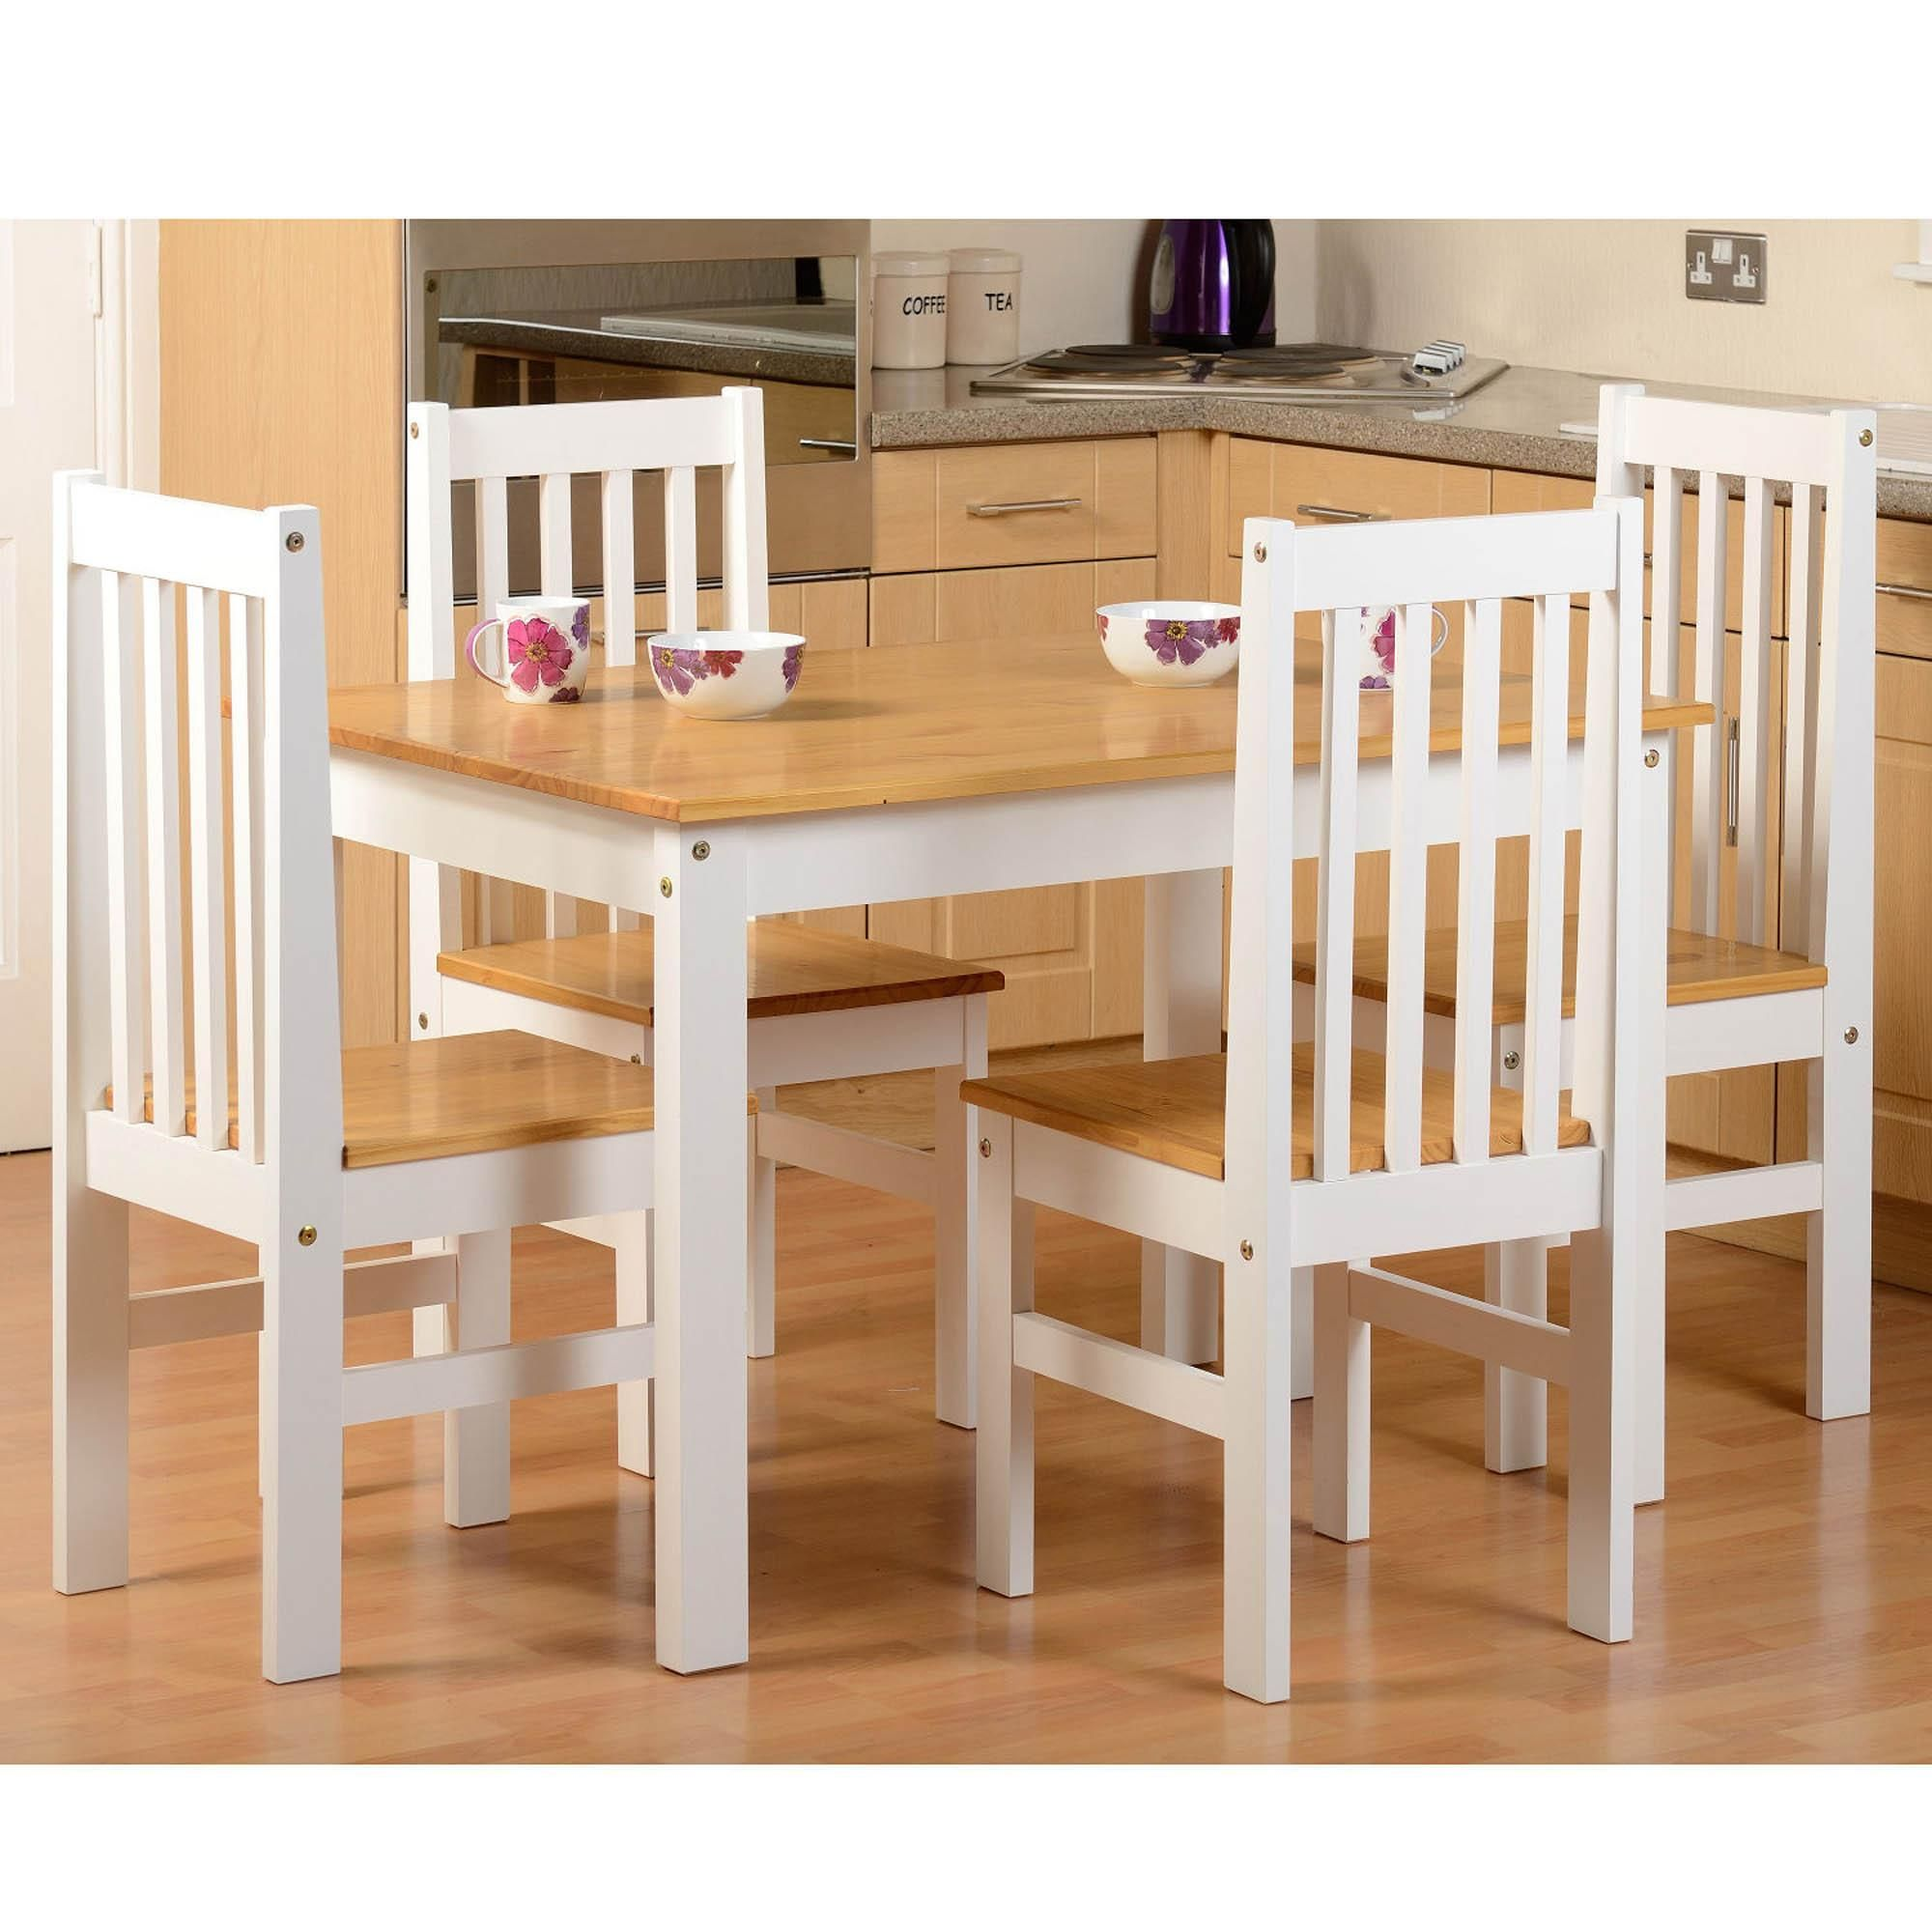 Wooden White And Brown Ludlow 4 Seater Dining Set At Dunelm